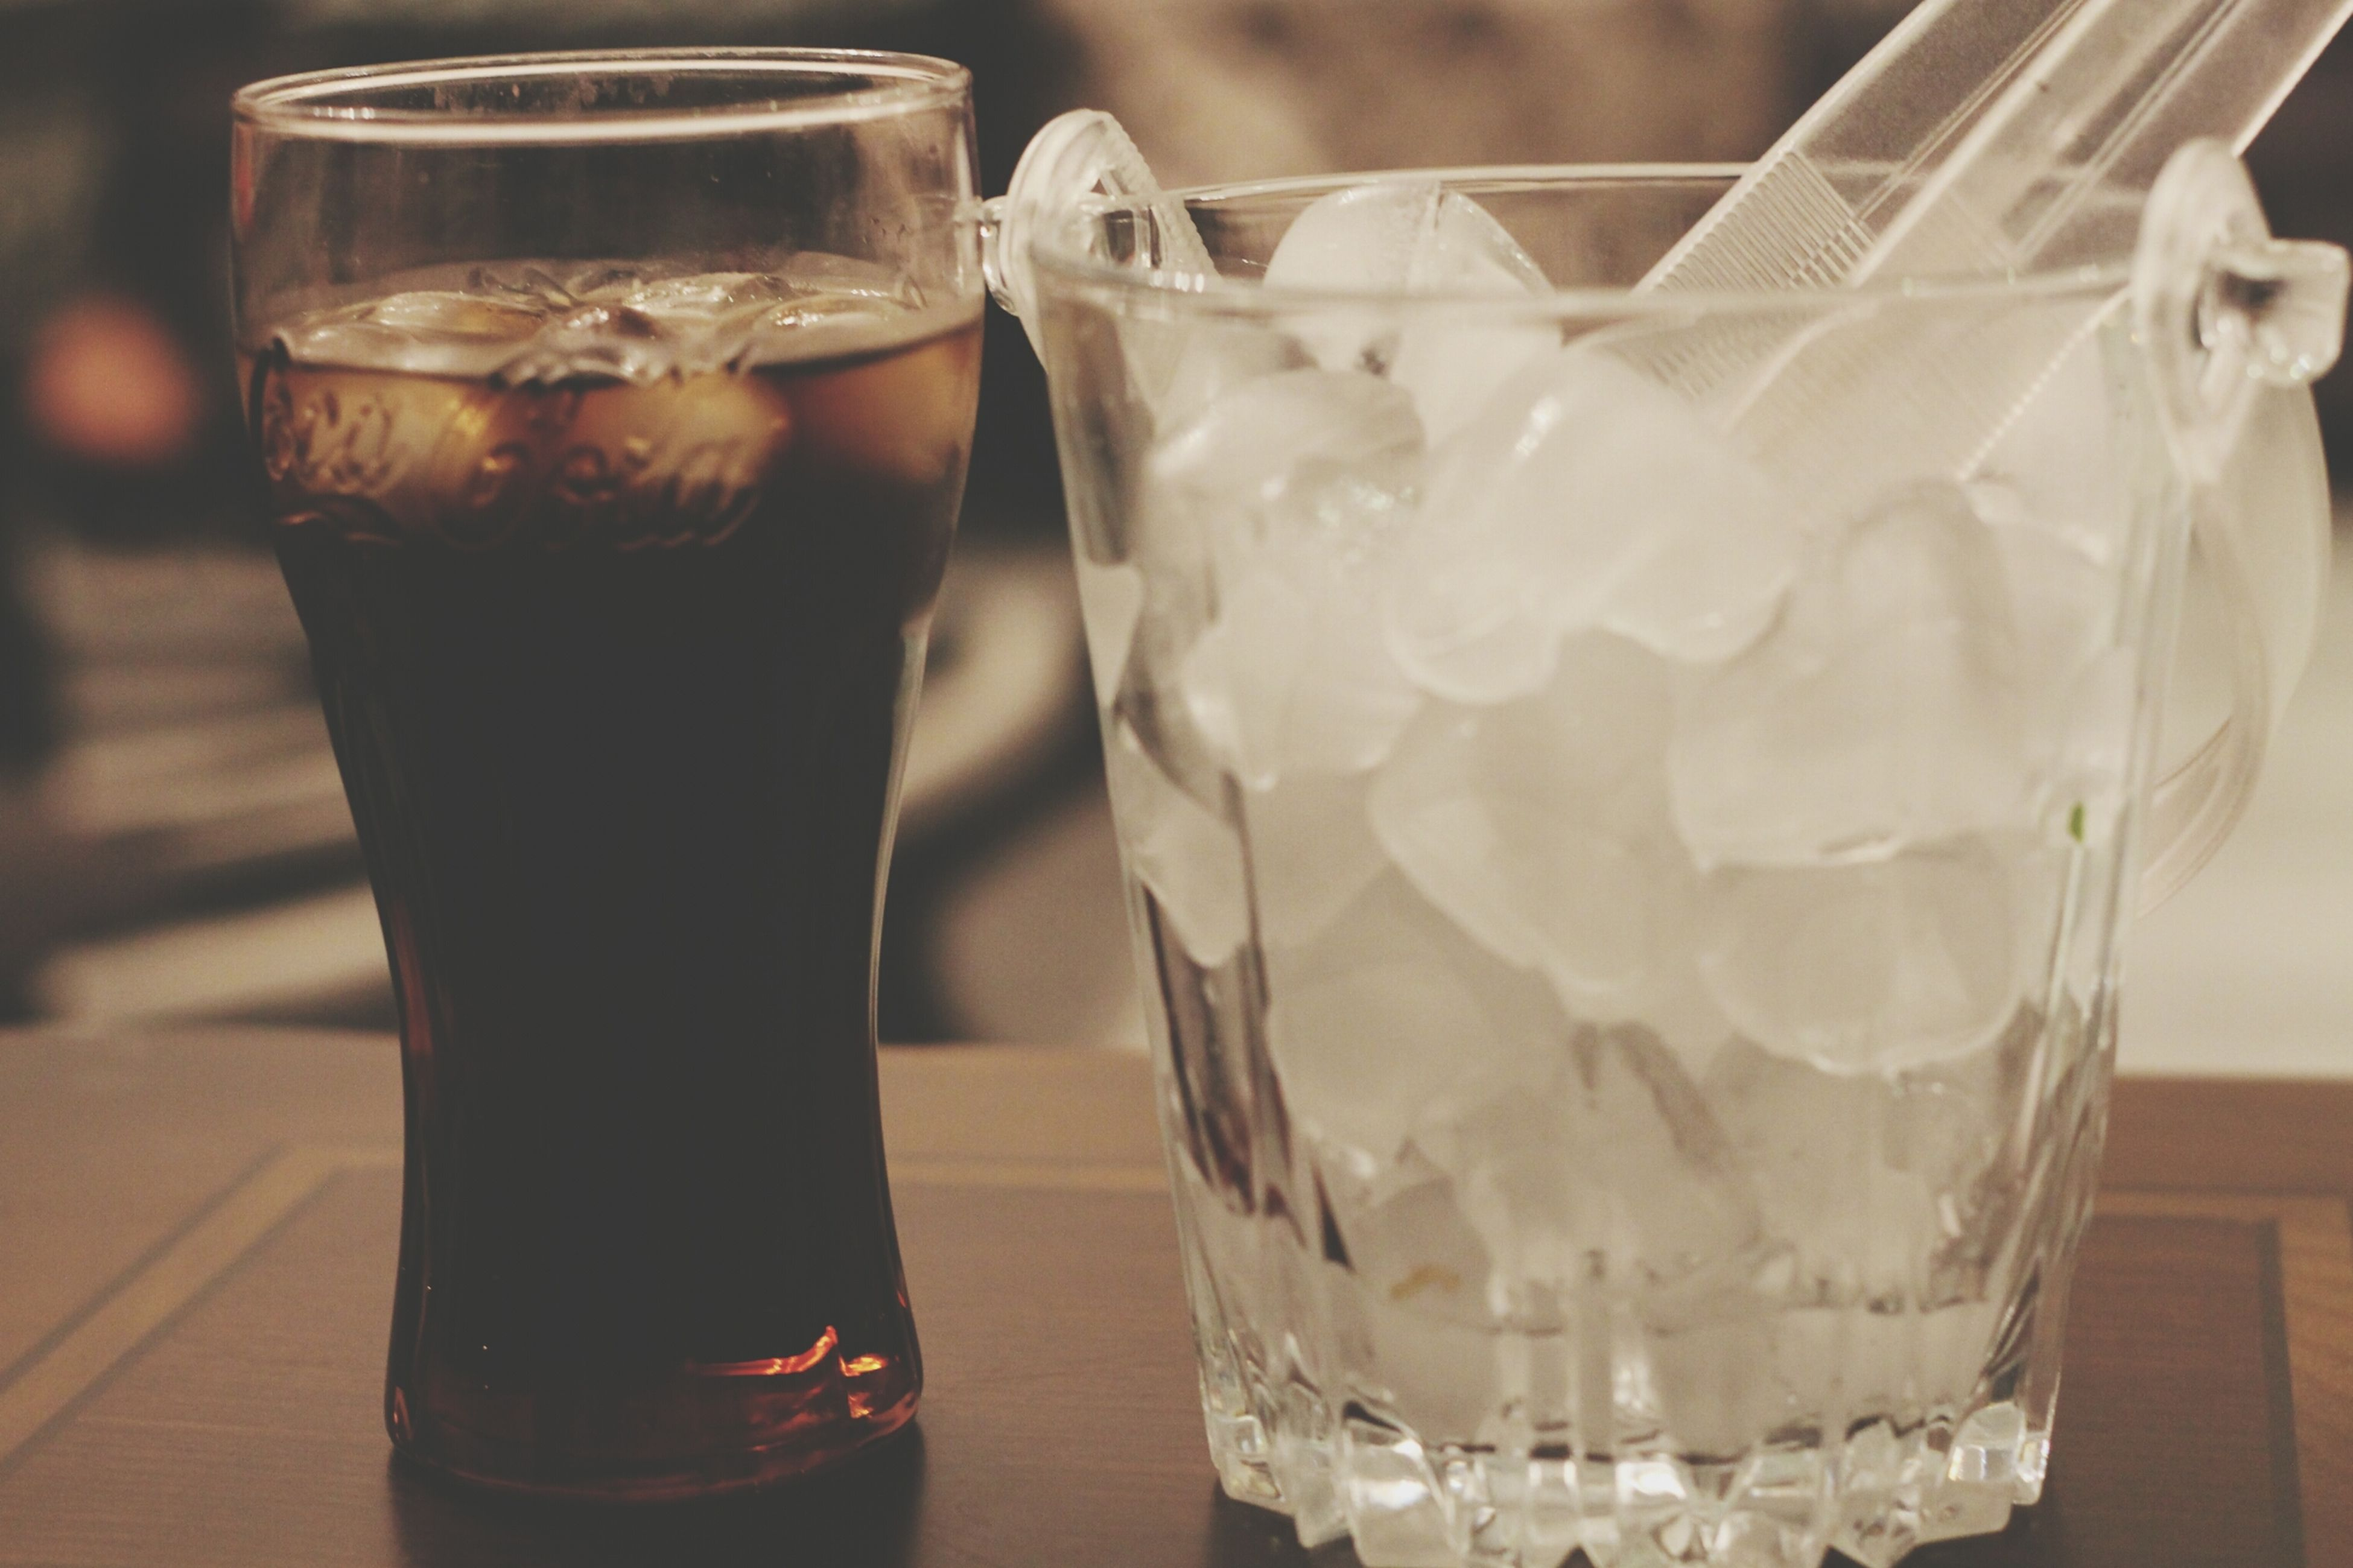 food and drink, drink, refreshment, drinking glass, freshness, indoors, table, close-up, still life, glass - material, cold temperature, ice, alcohol, focus on foreground, transparent, glass, drinking straw, ice cube, beer glass, cocktail